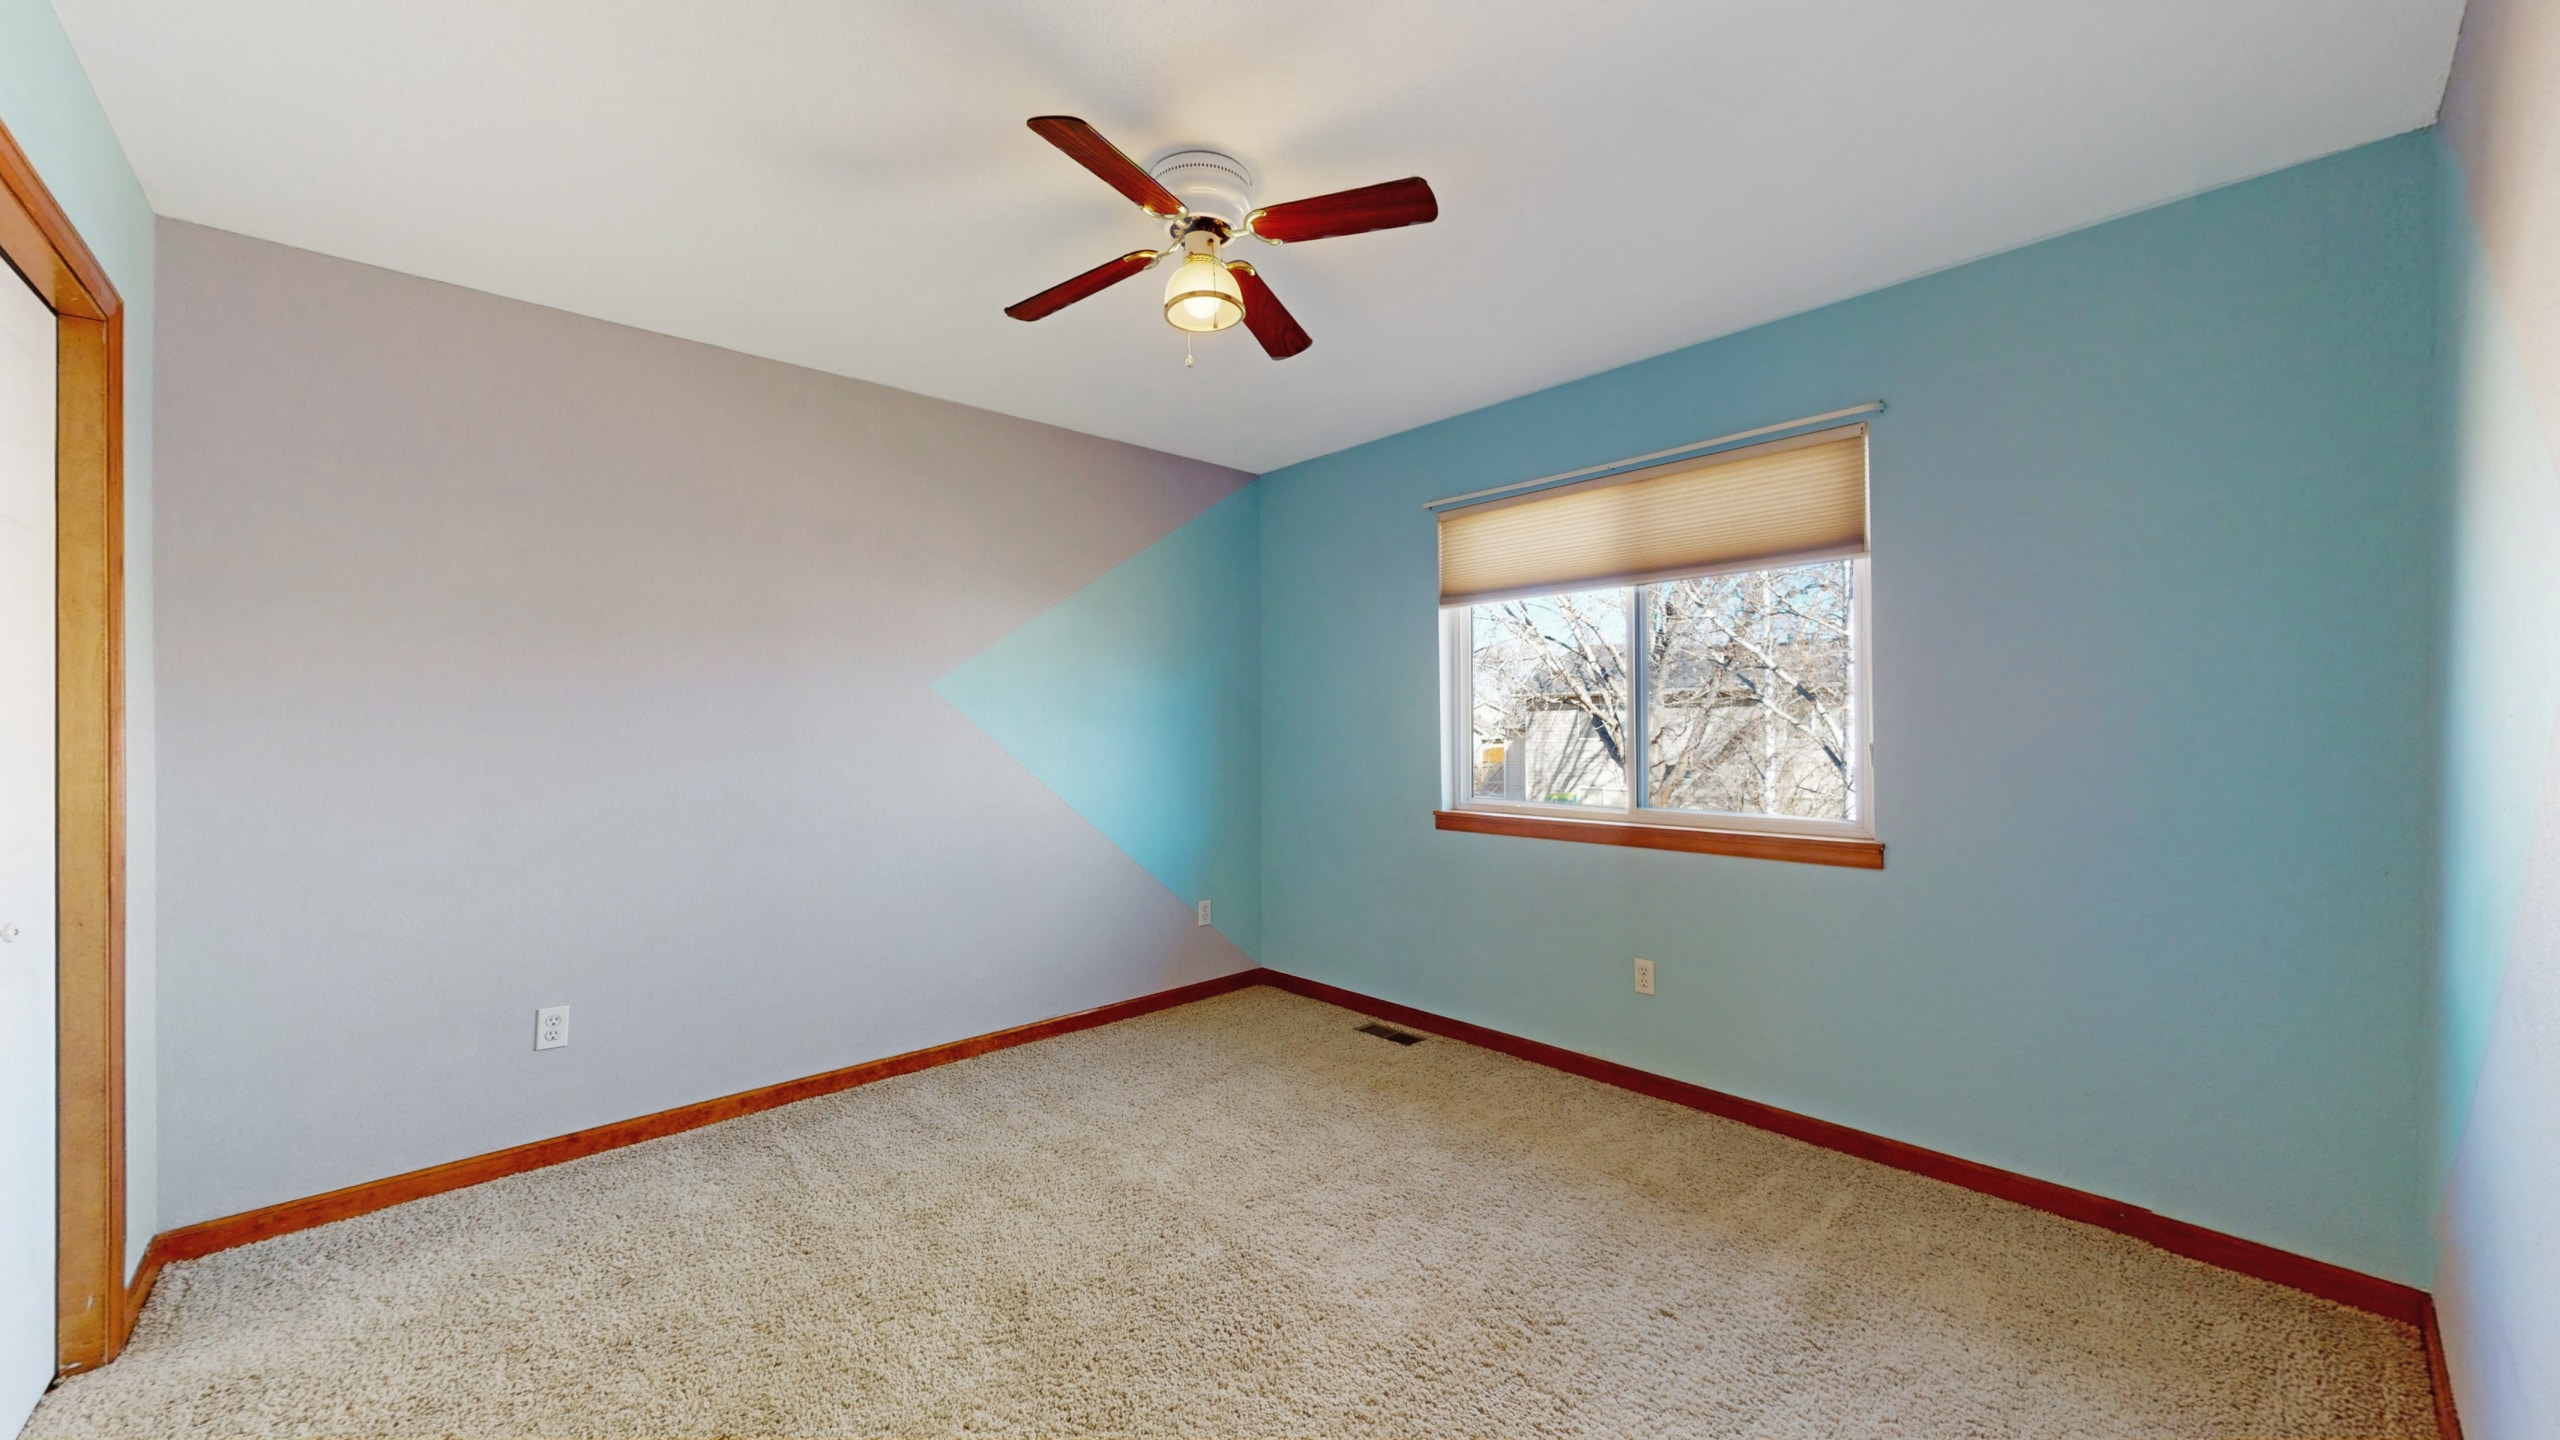 Brighton house for sale bedroom with blue grey walls and wood trim